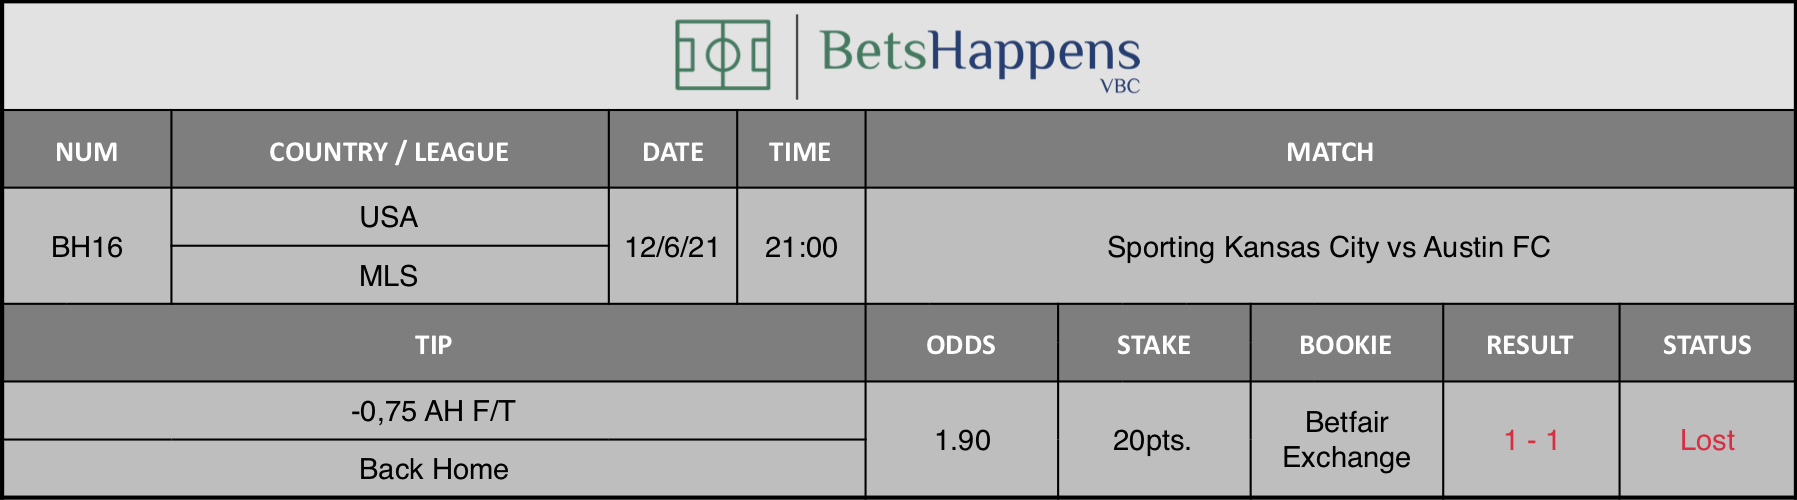 Results of our tip for the Sporting Kansas City vs Austin FC Match -0,75 AH F/T Back Home is recommended.